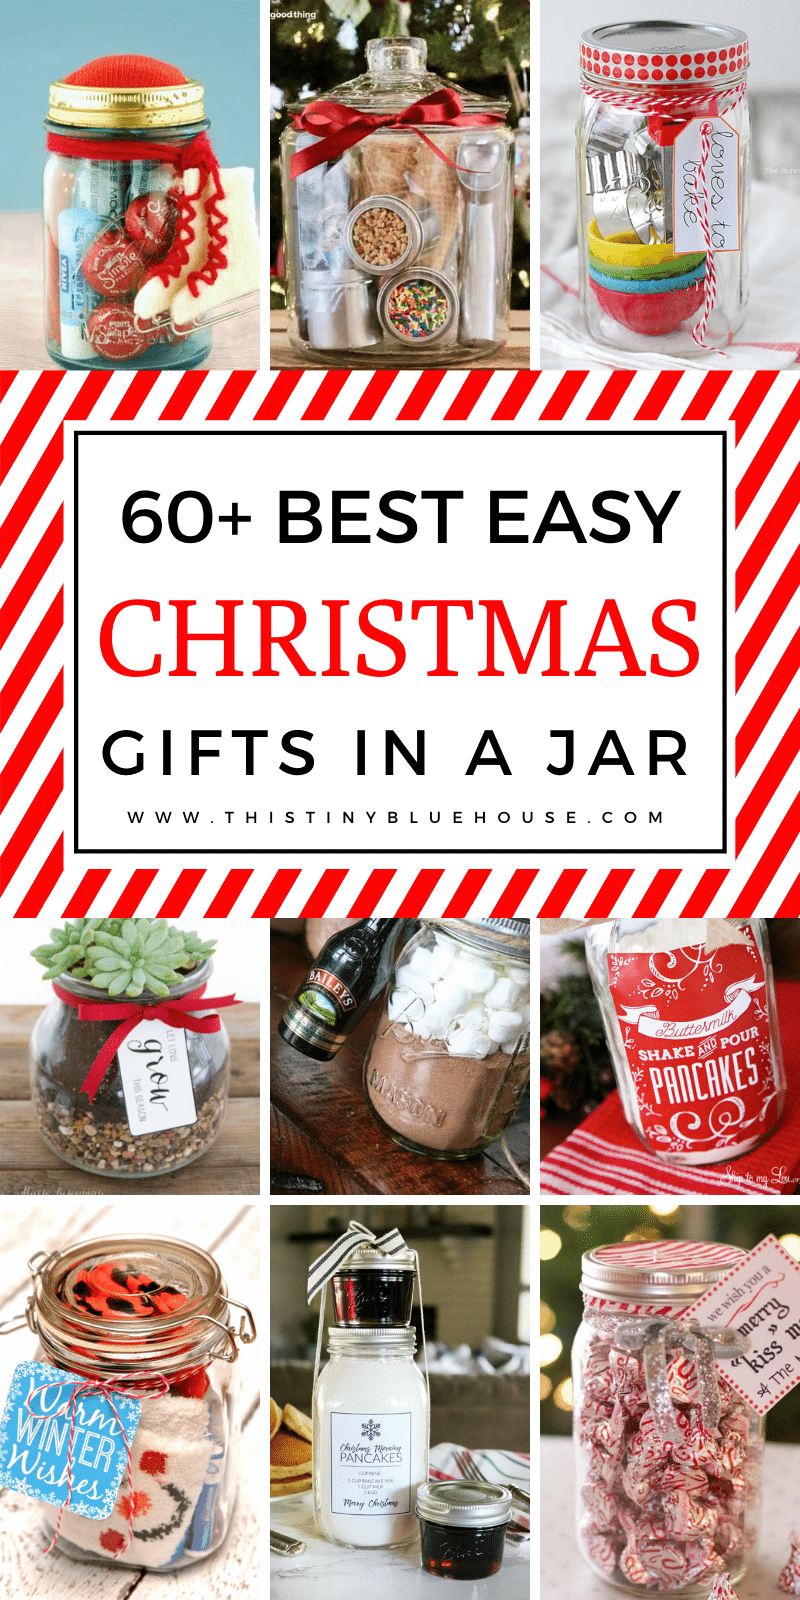 Spoil friends and family this Christmas with these fun, festive and clever DIY Christmas gifts in a jar. From Sangria and survival kits to Play-Doh and Slime this post has a gift in a jar for EVERY person in your life. #DIYChristmasGifts #DIYChristmasGiftsInAJar #DIYChristmasGiftsCheap #DIYChristmasGiftsInAJarUnique #DIYChristmasGiftsInAJarSimple #DIYChristmasGiftsInAJarFun